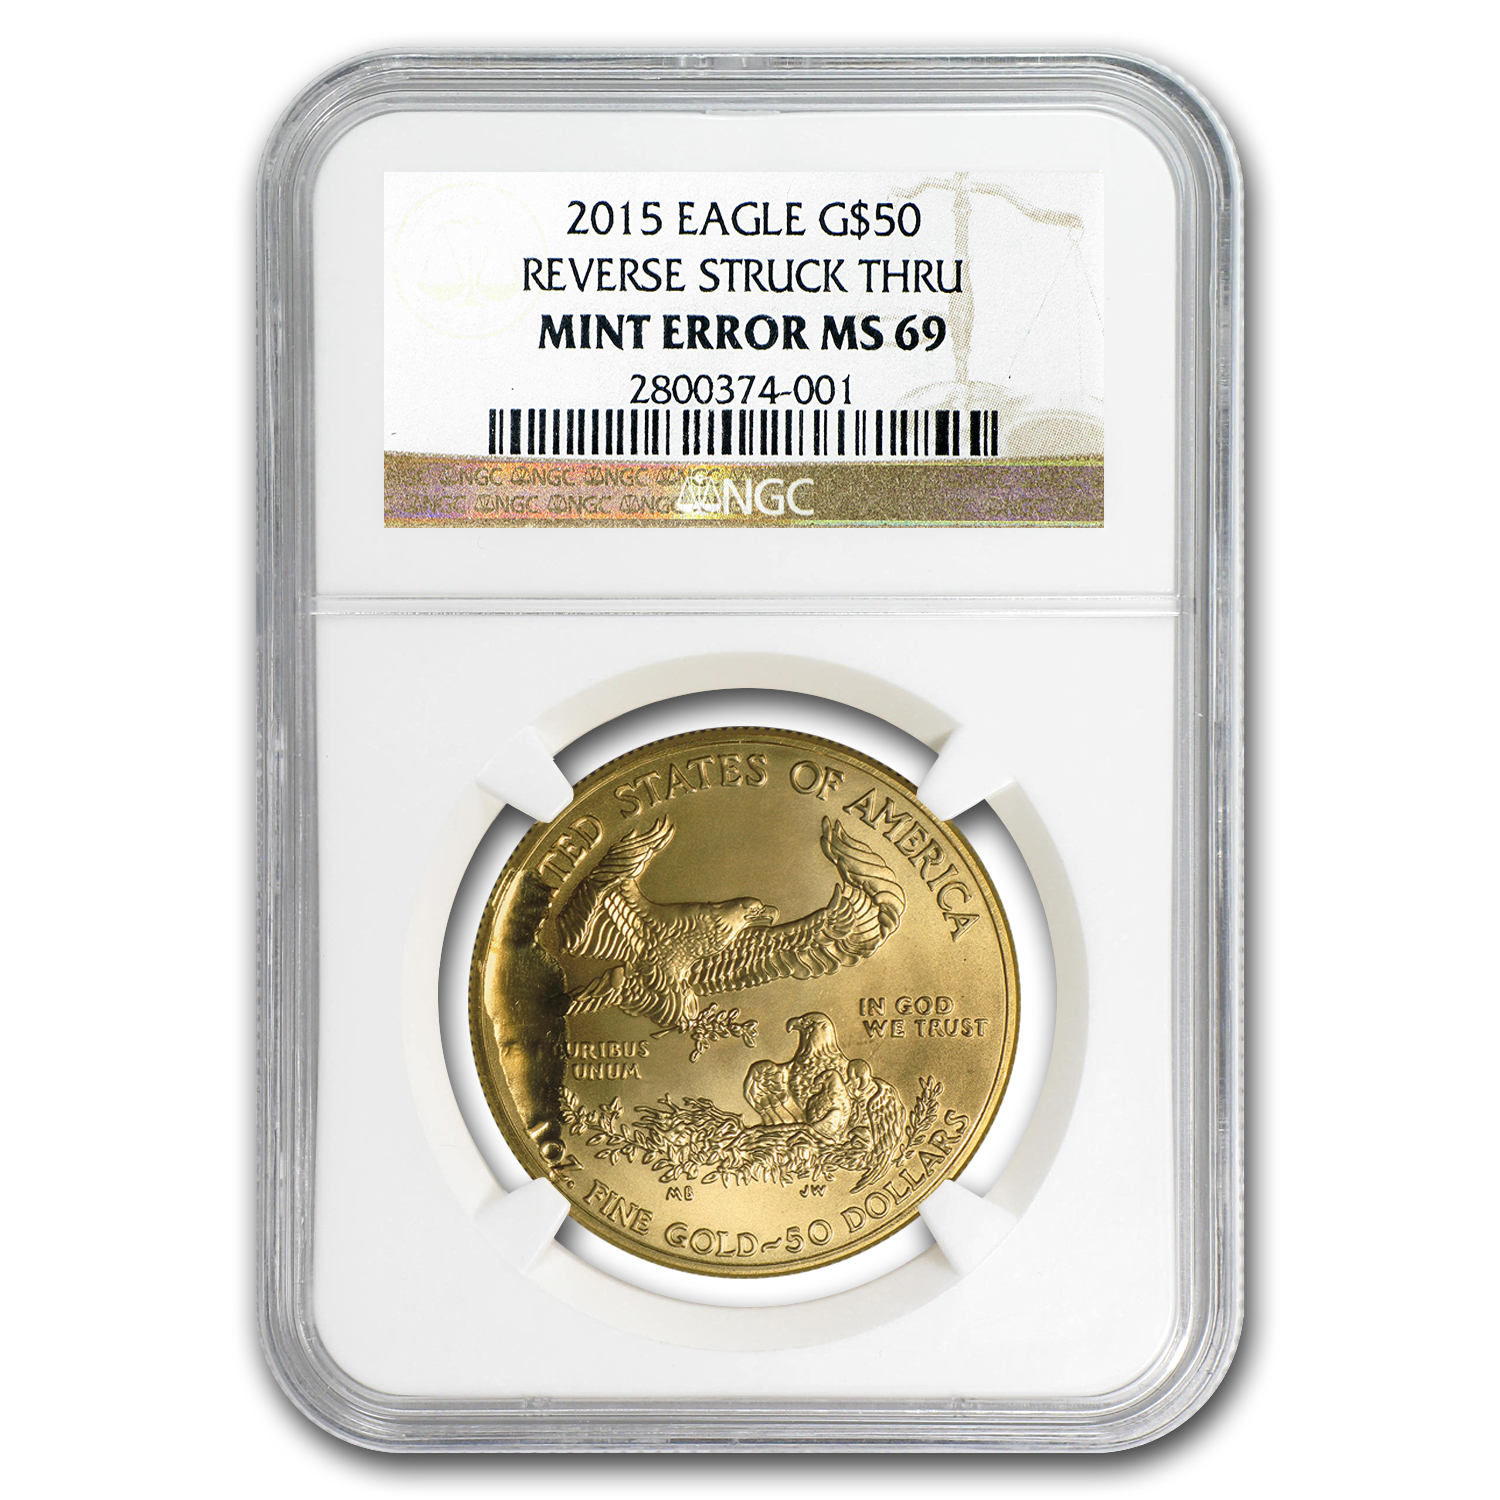 2015 1 oz Gold Eagle MS-69 NGC Mint Error (Reverse Struck Thru)